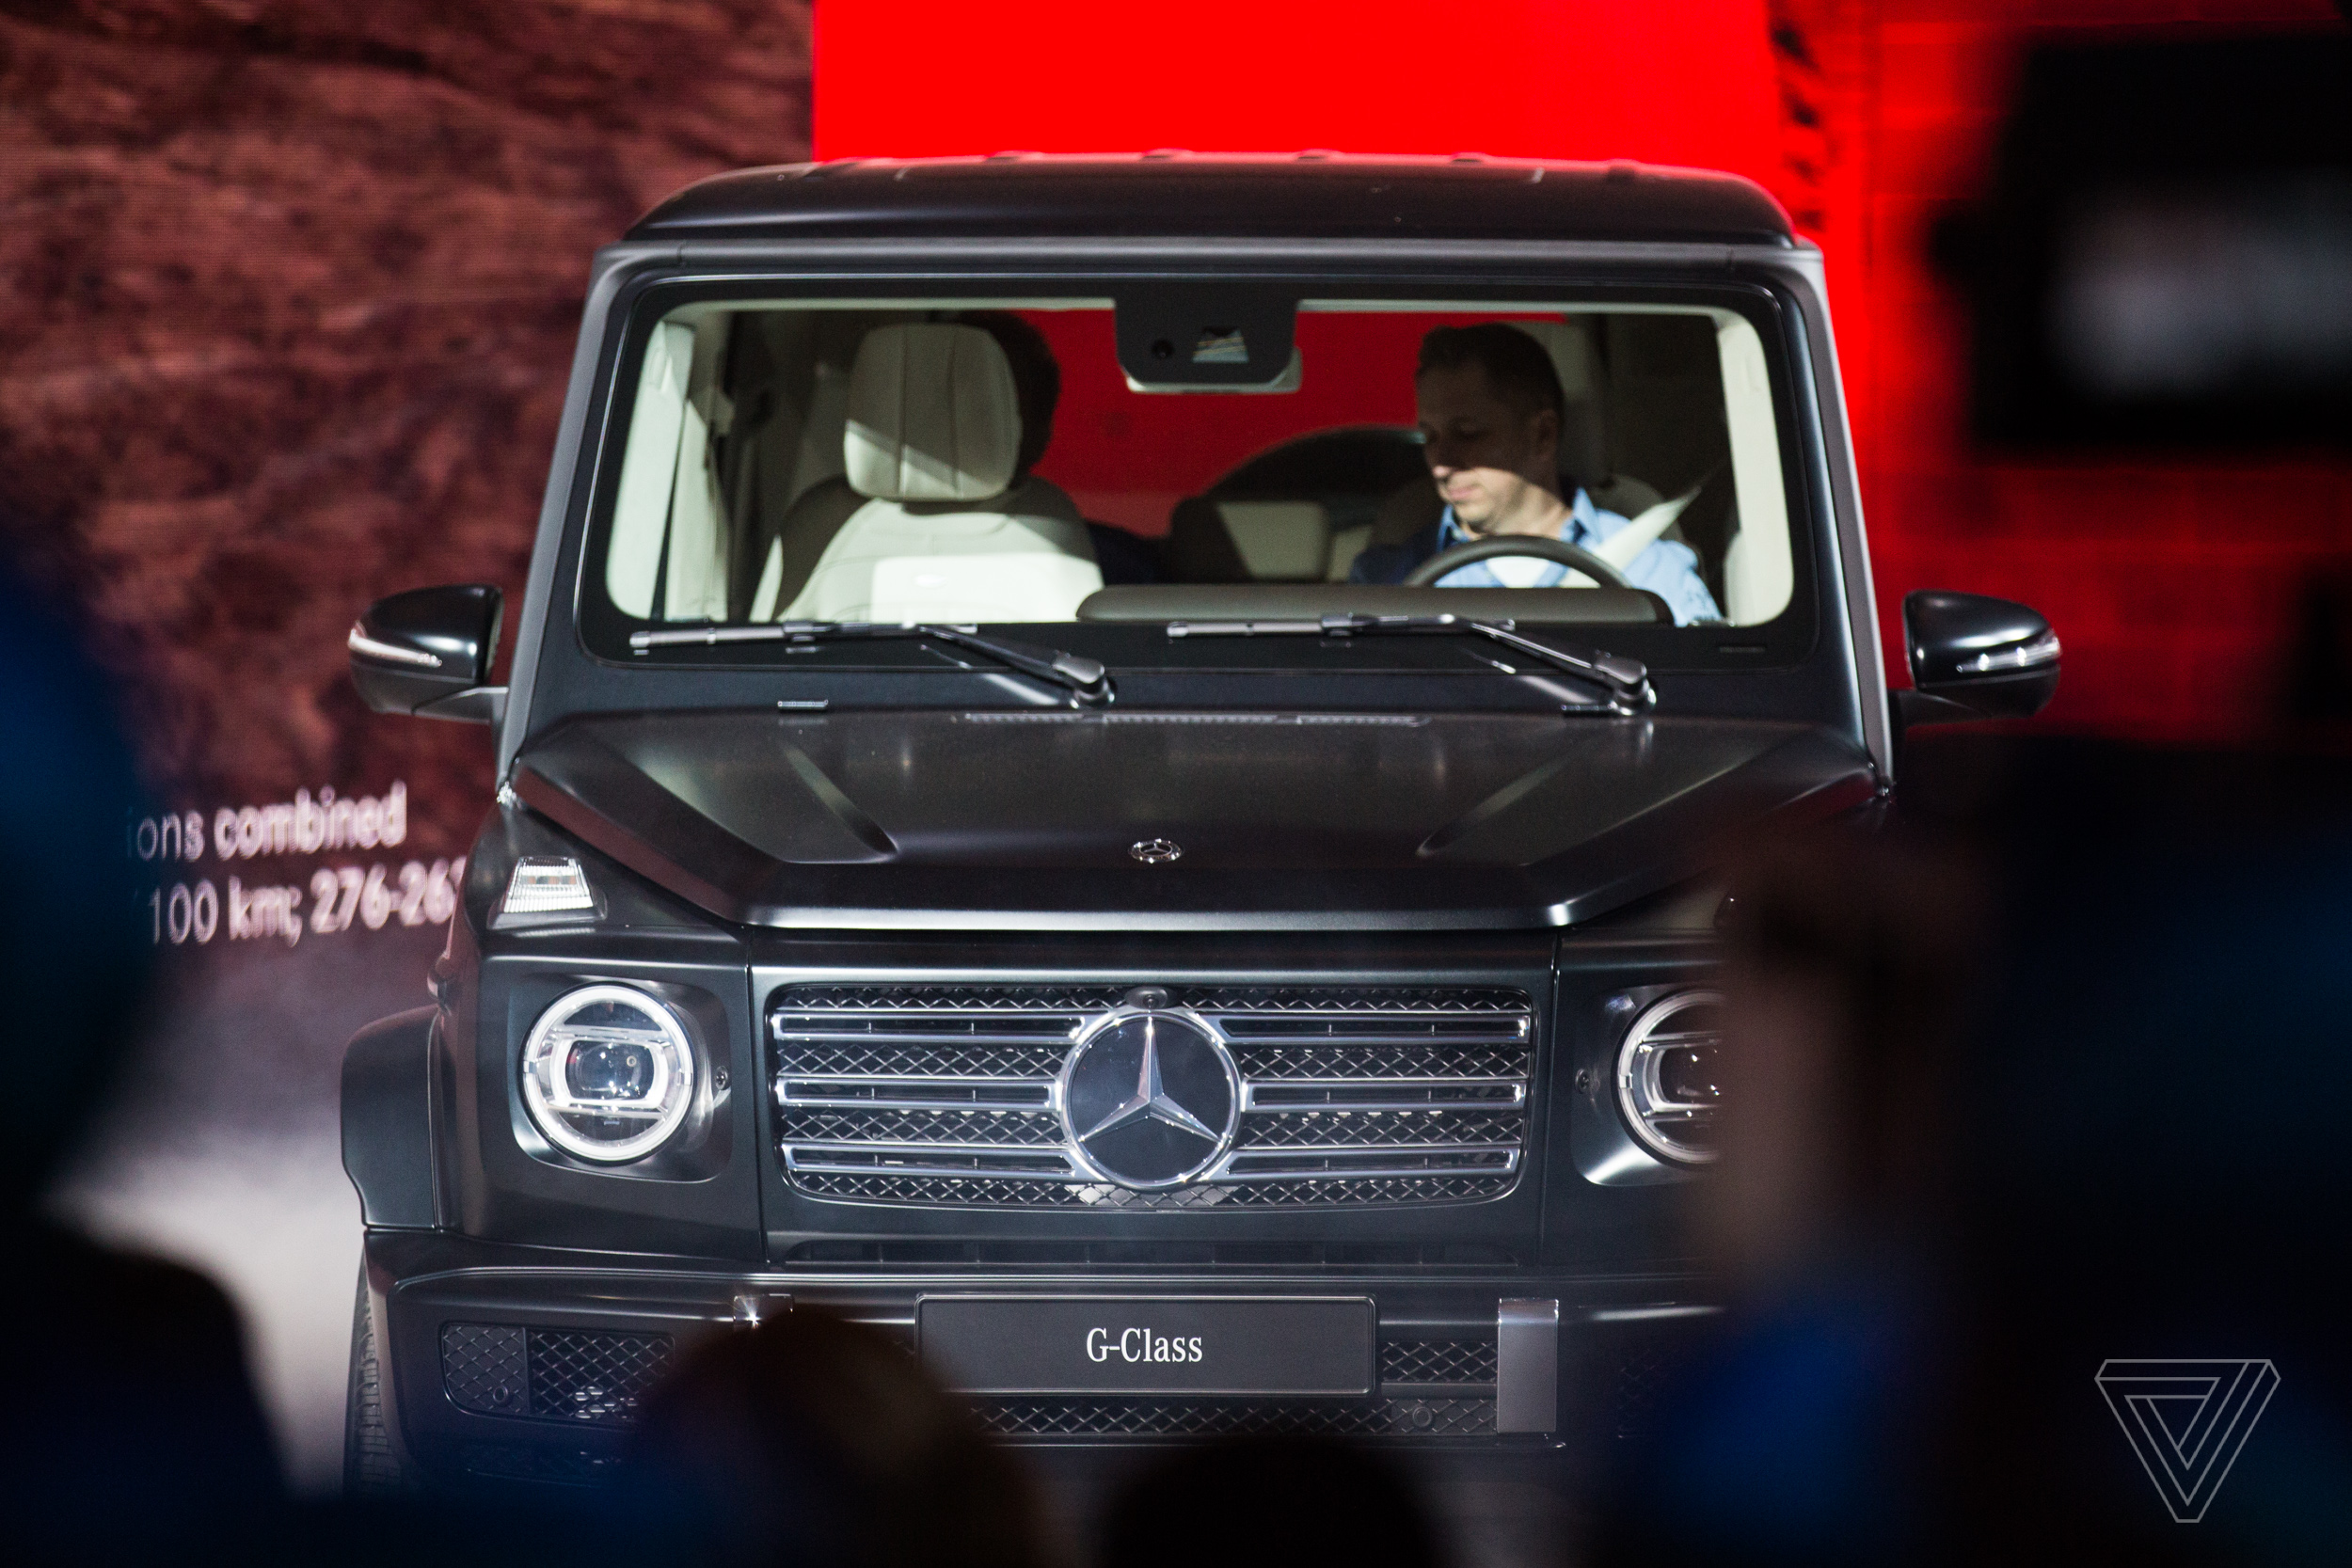 BMW and Mercedes-Benz will also try out subscription plans for new cars